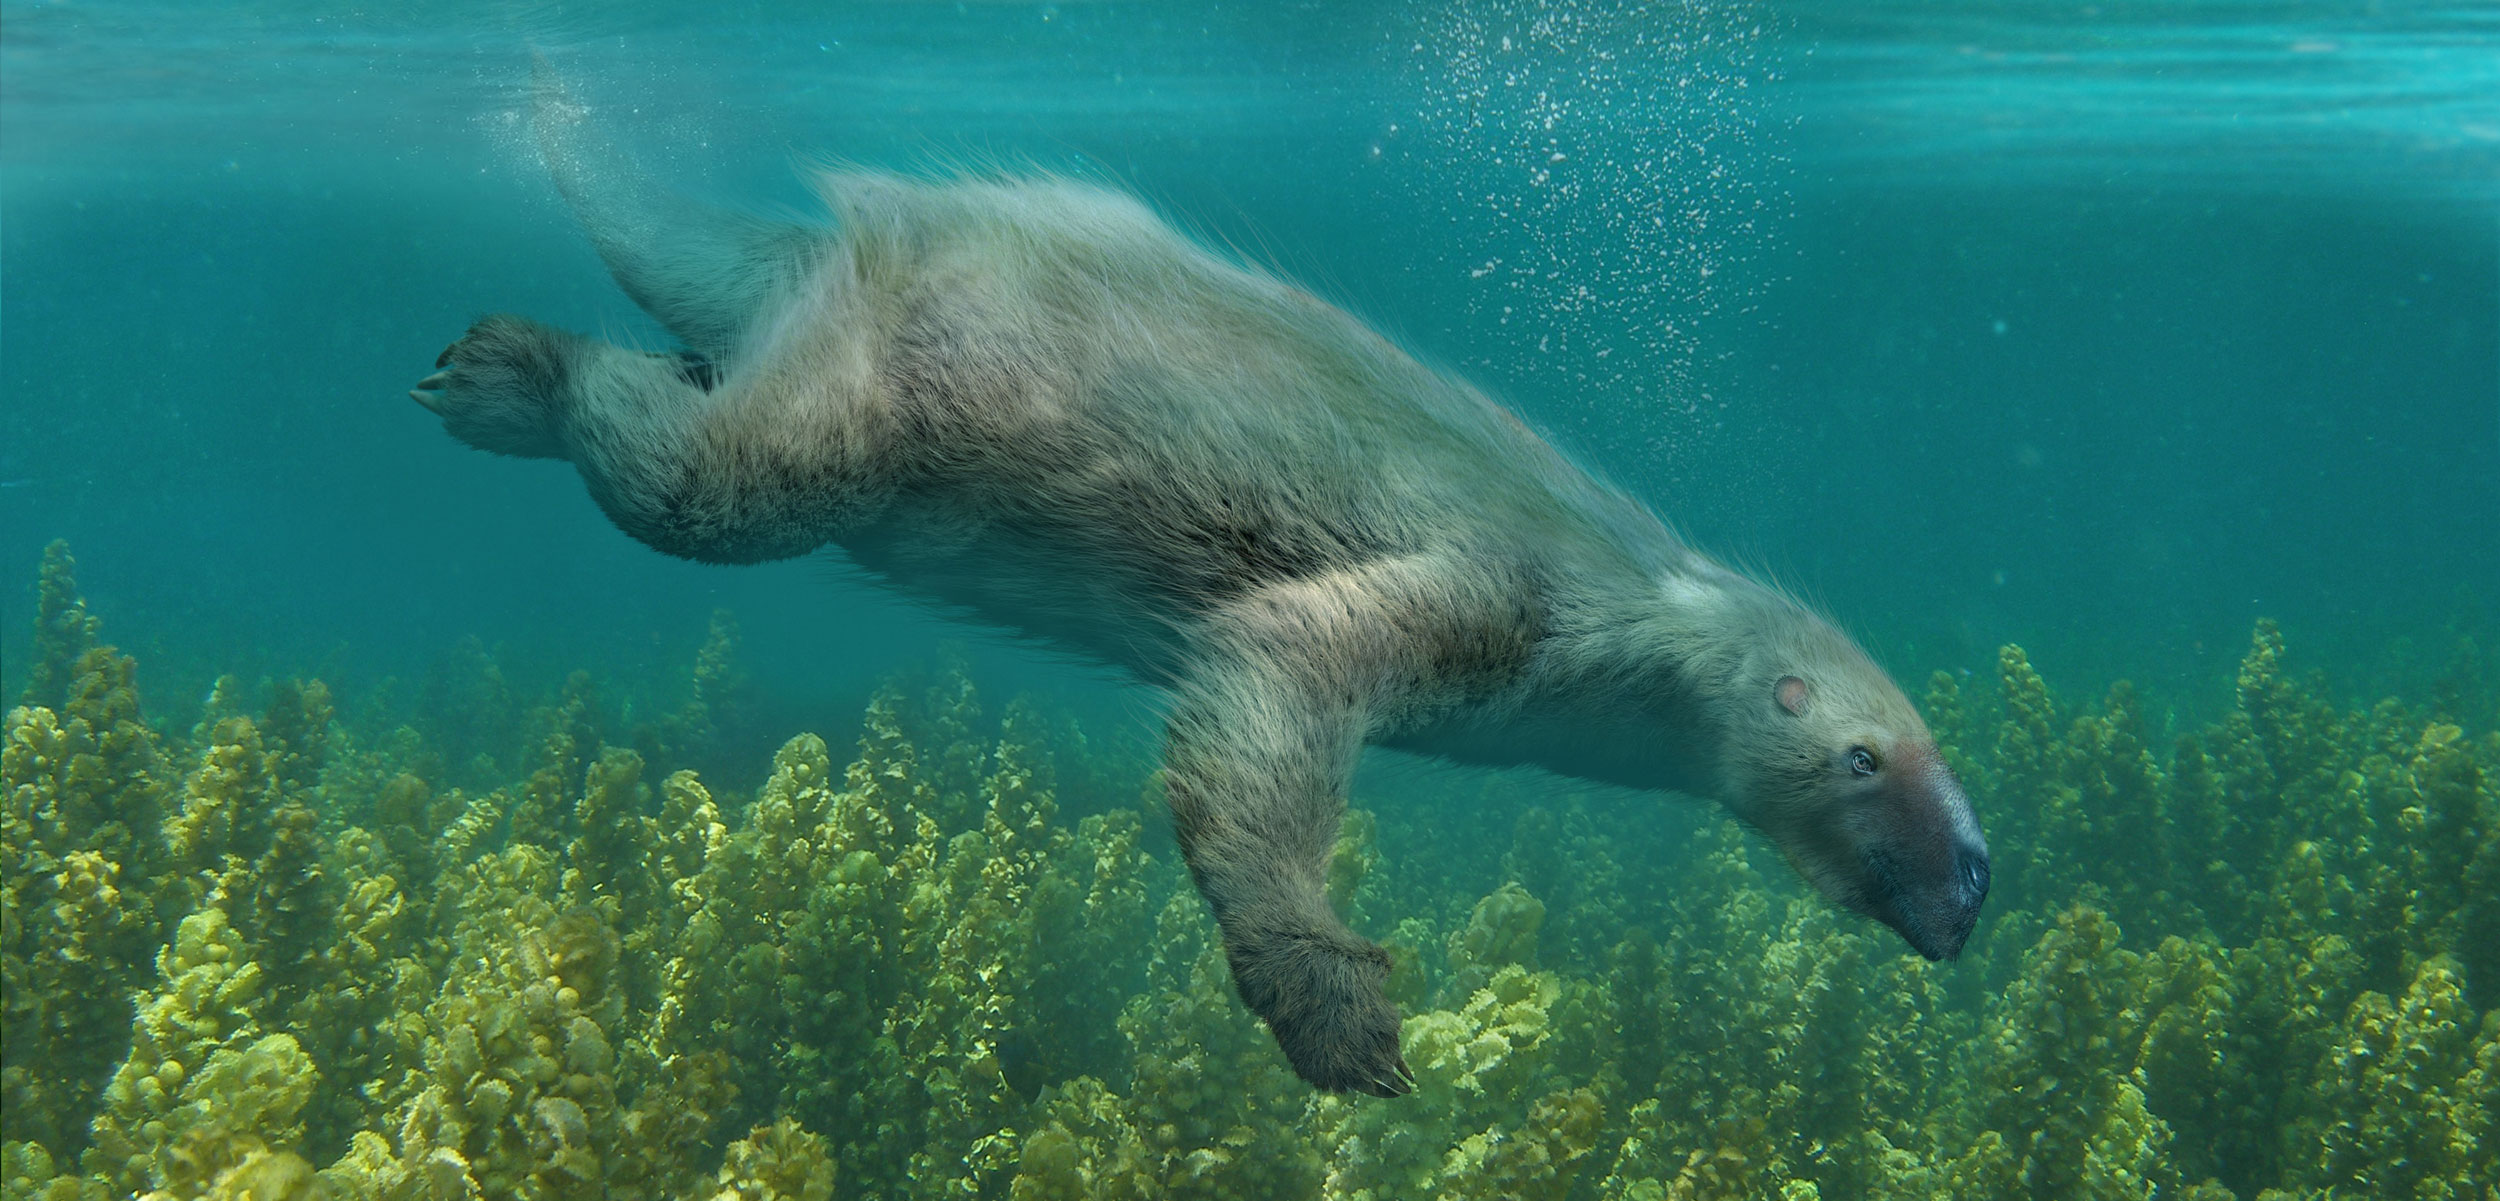 rendering of a Thalassocnus sloth